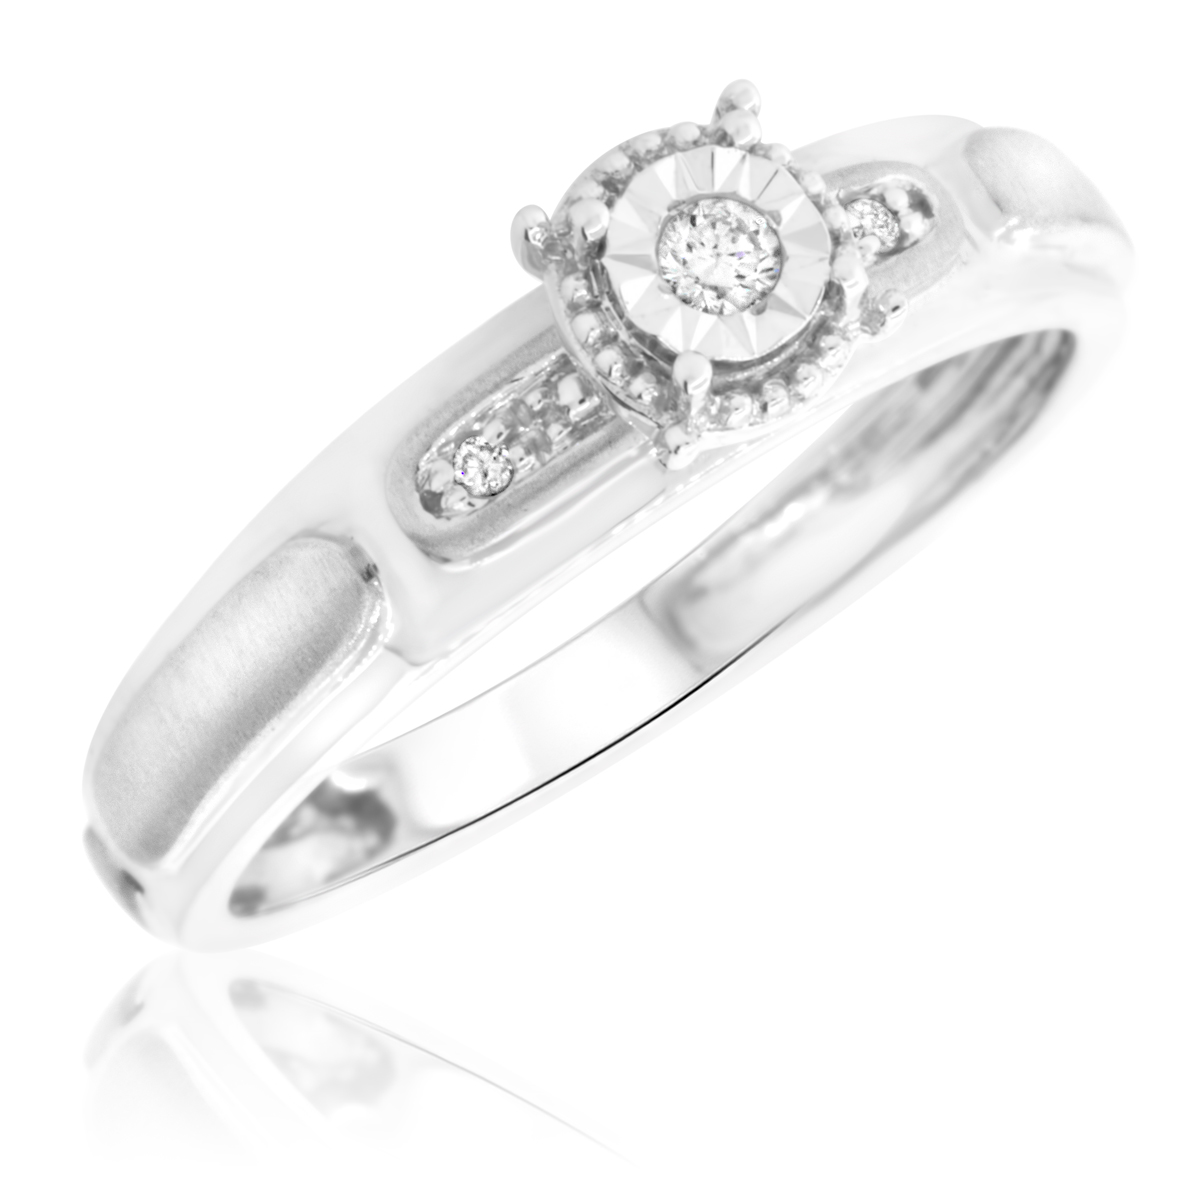 1/20 Carat T.W. Round Cut Diamond Ladies Engagement Ring 14K White Gold